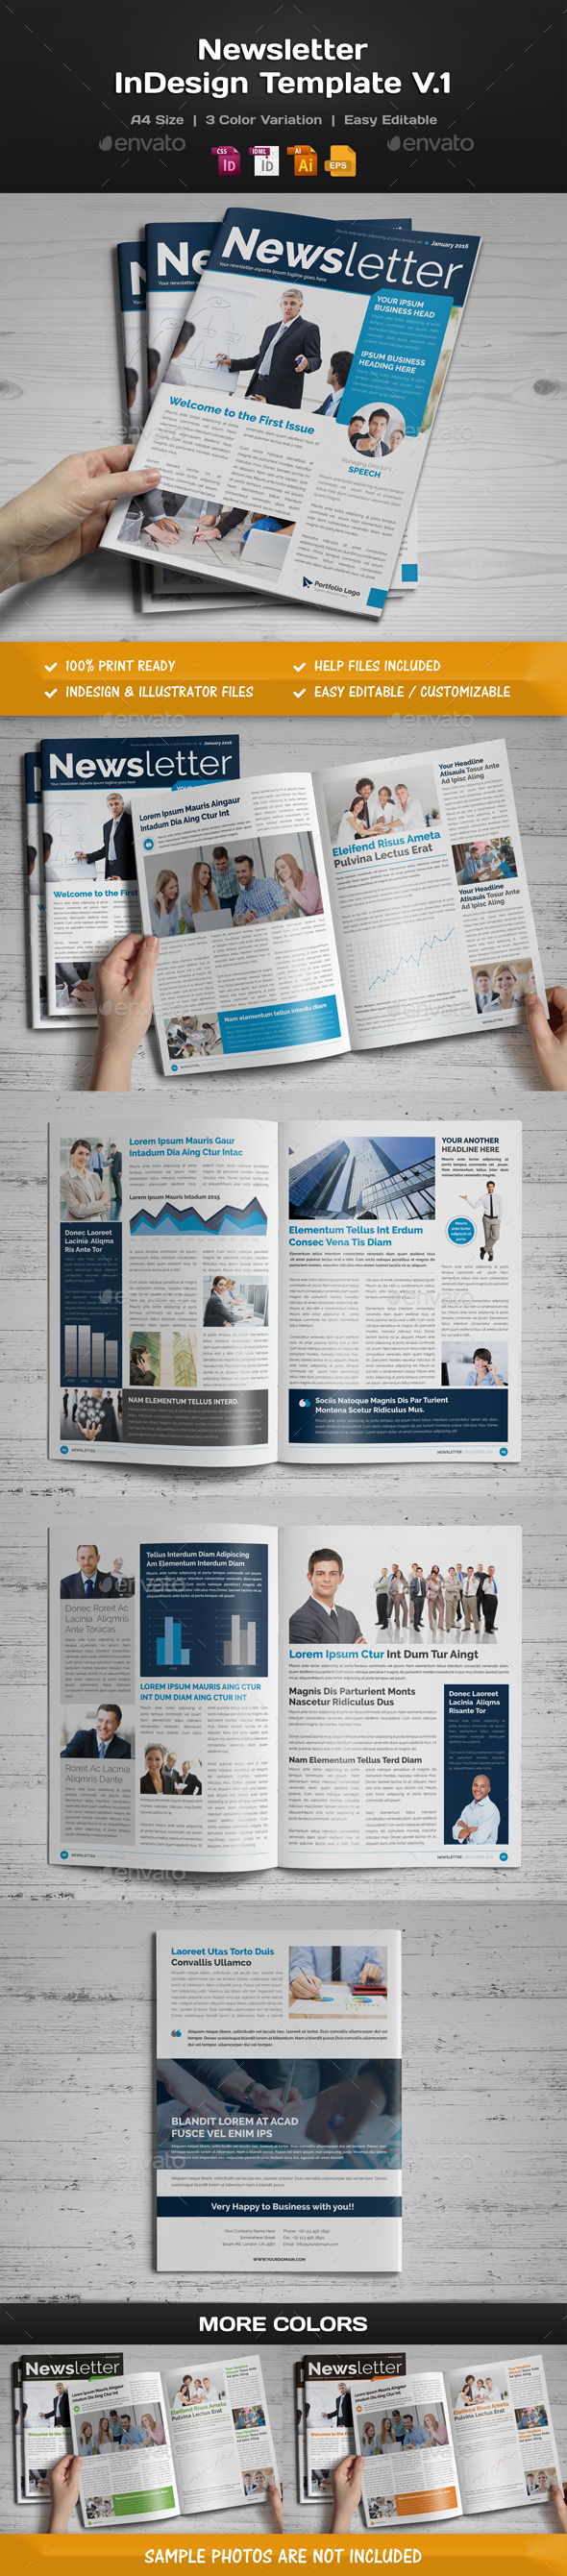 Newsletter Indesign Template v1 - Newsletters Print Templates